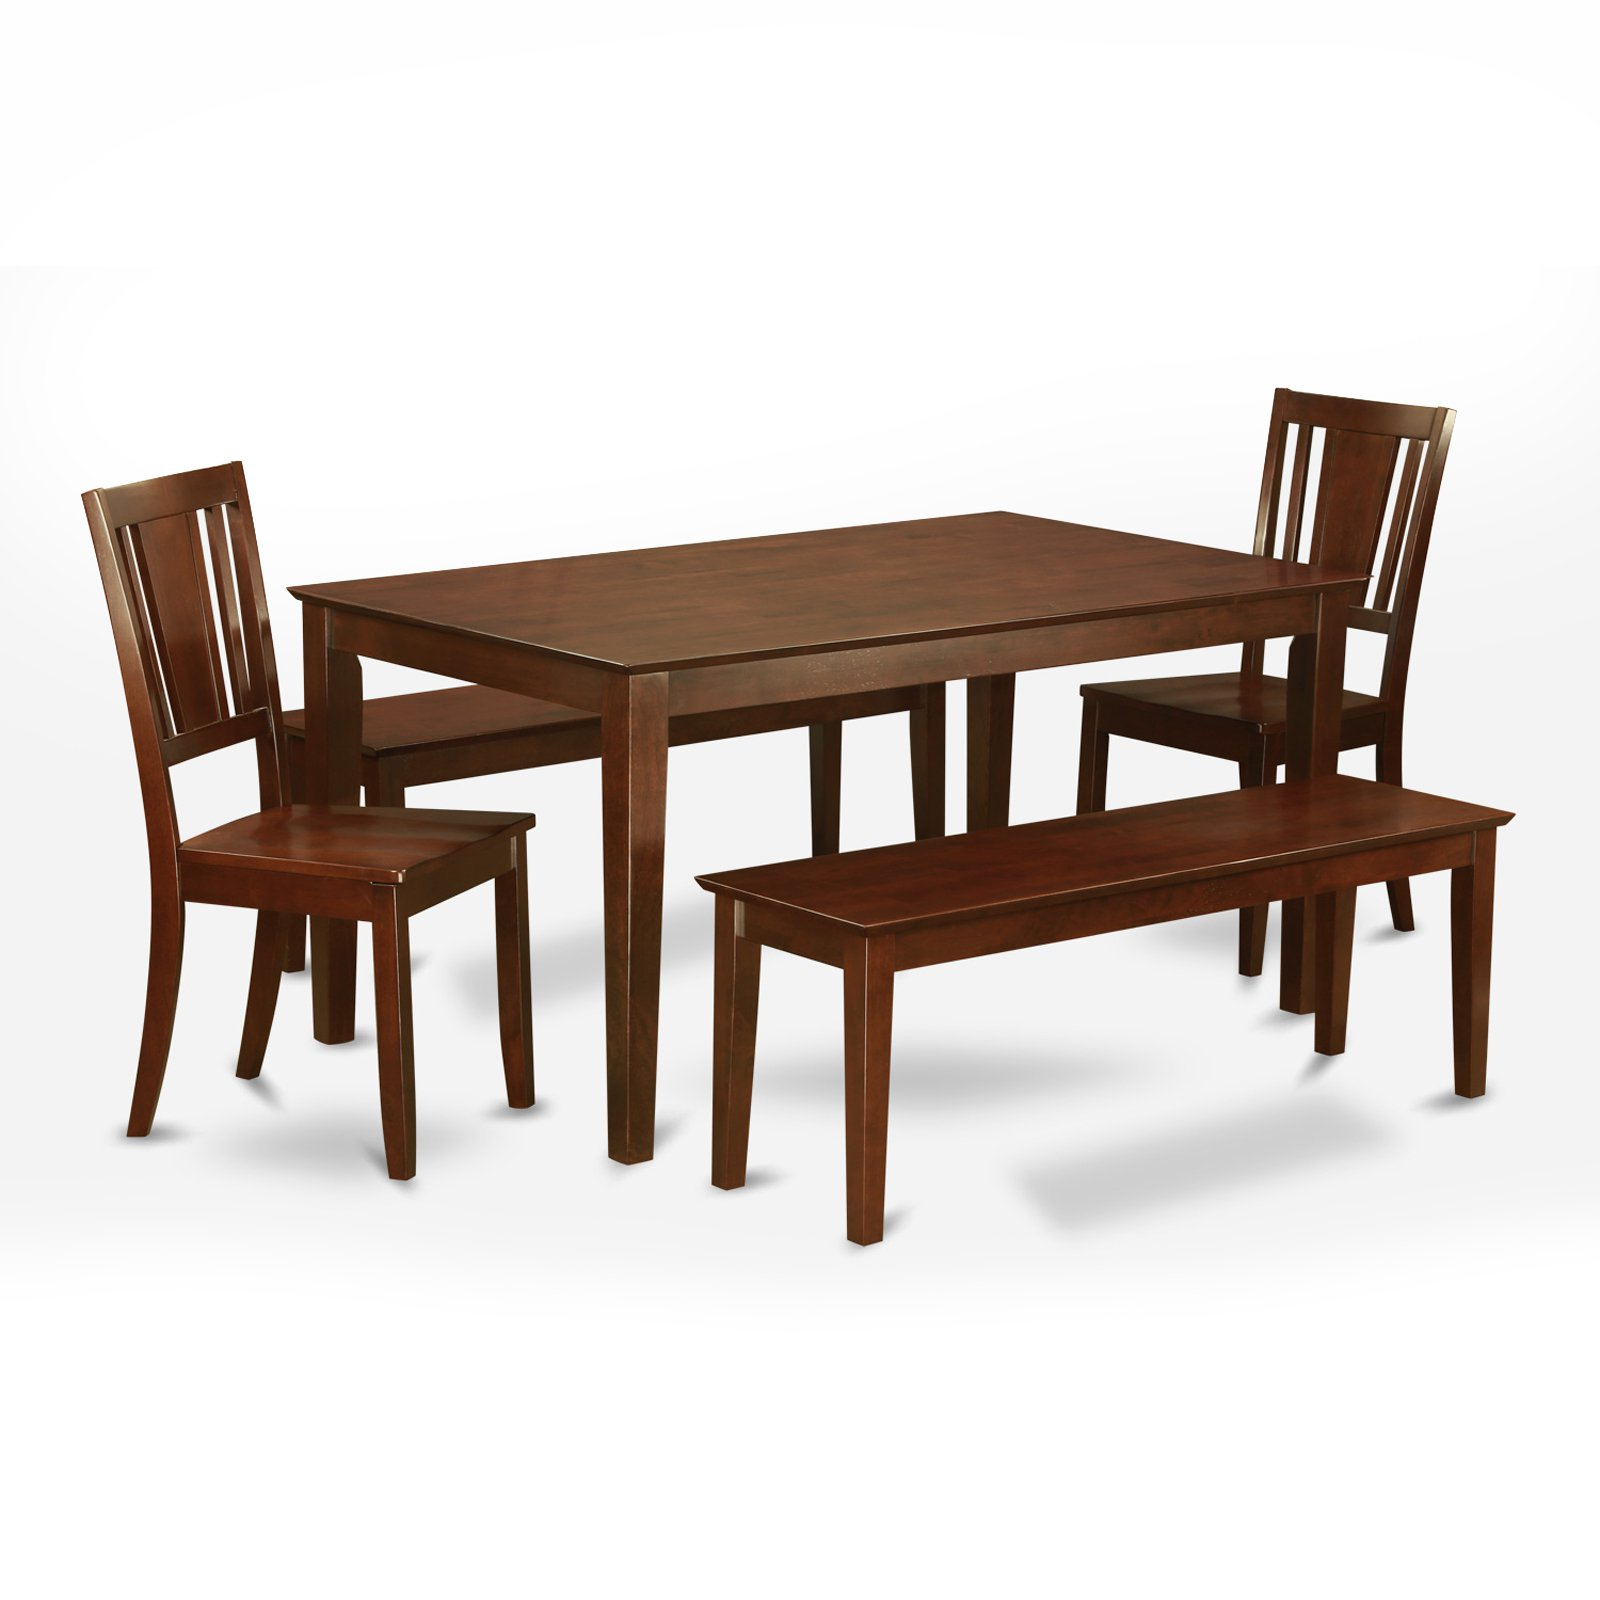 East West Furniture Capris 5 Piece Rectangular Dining Table Set with Buckland Chairs